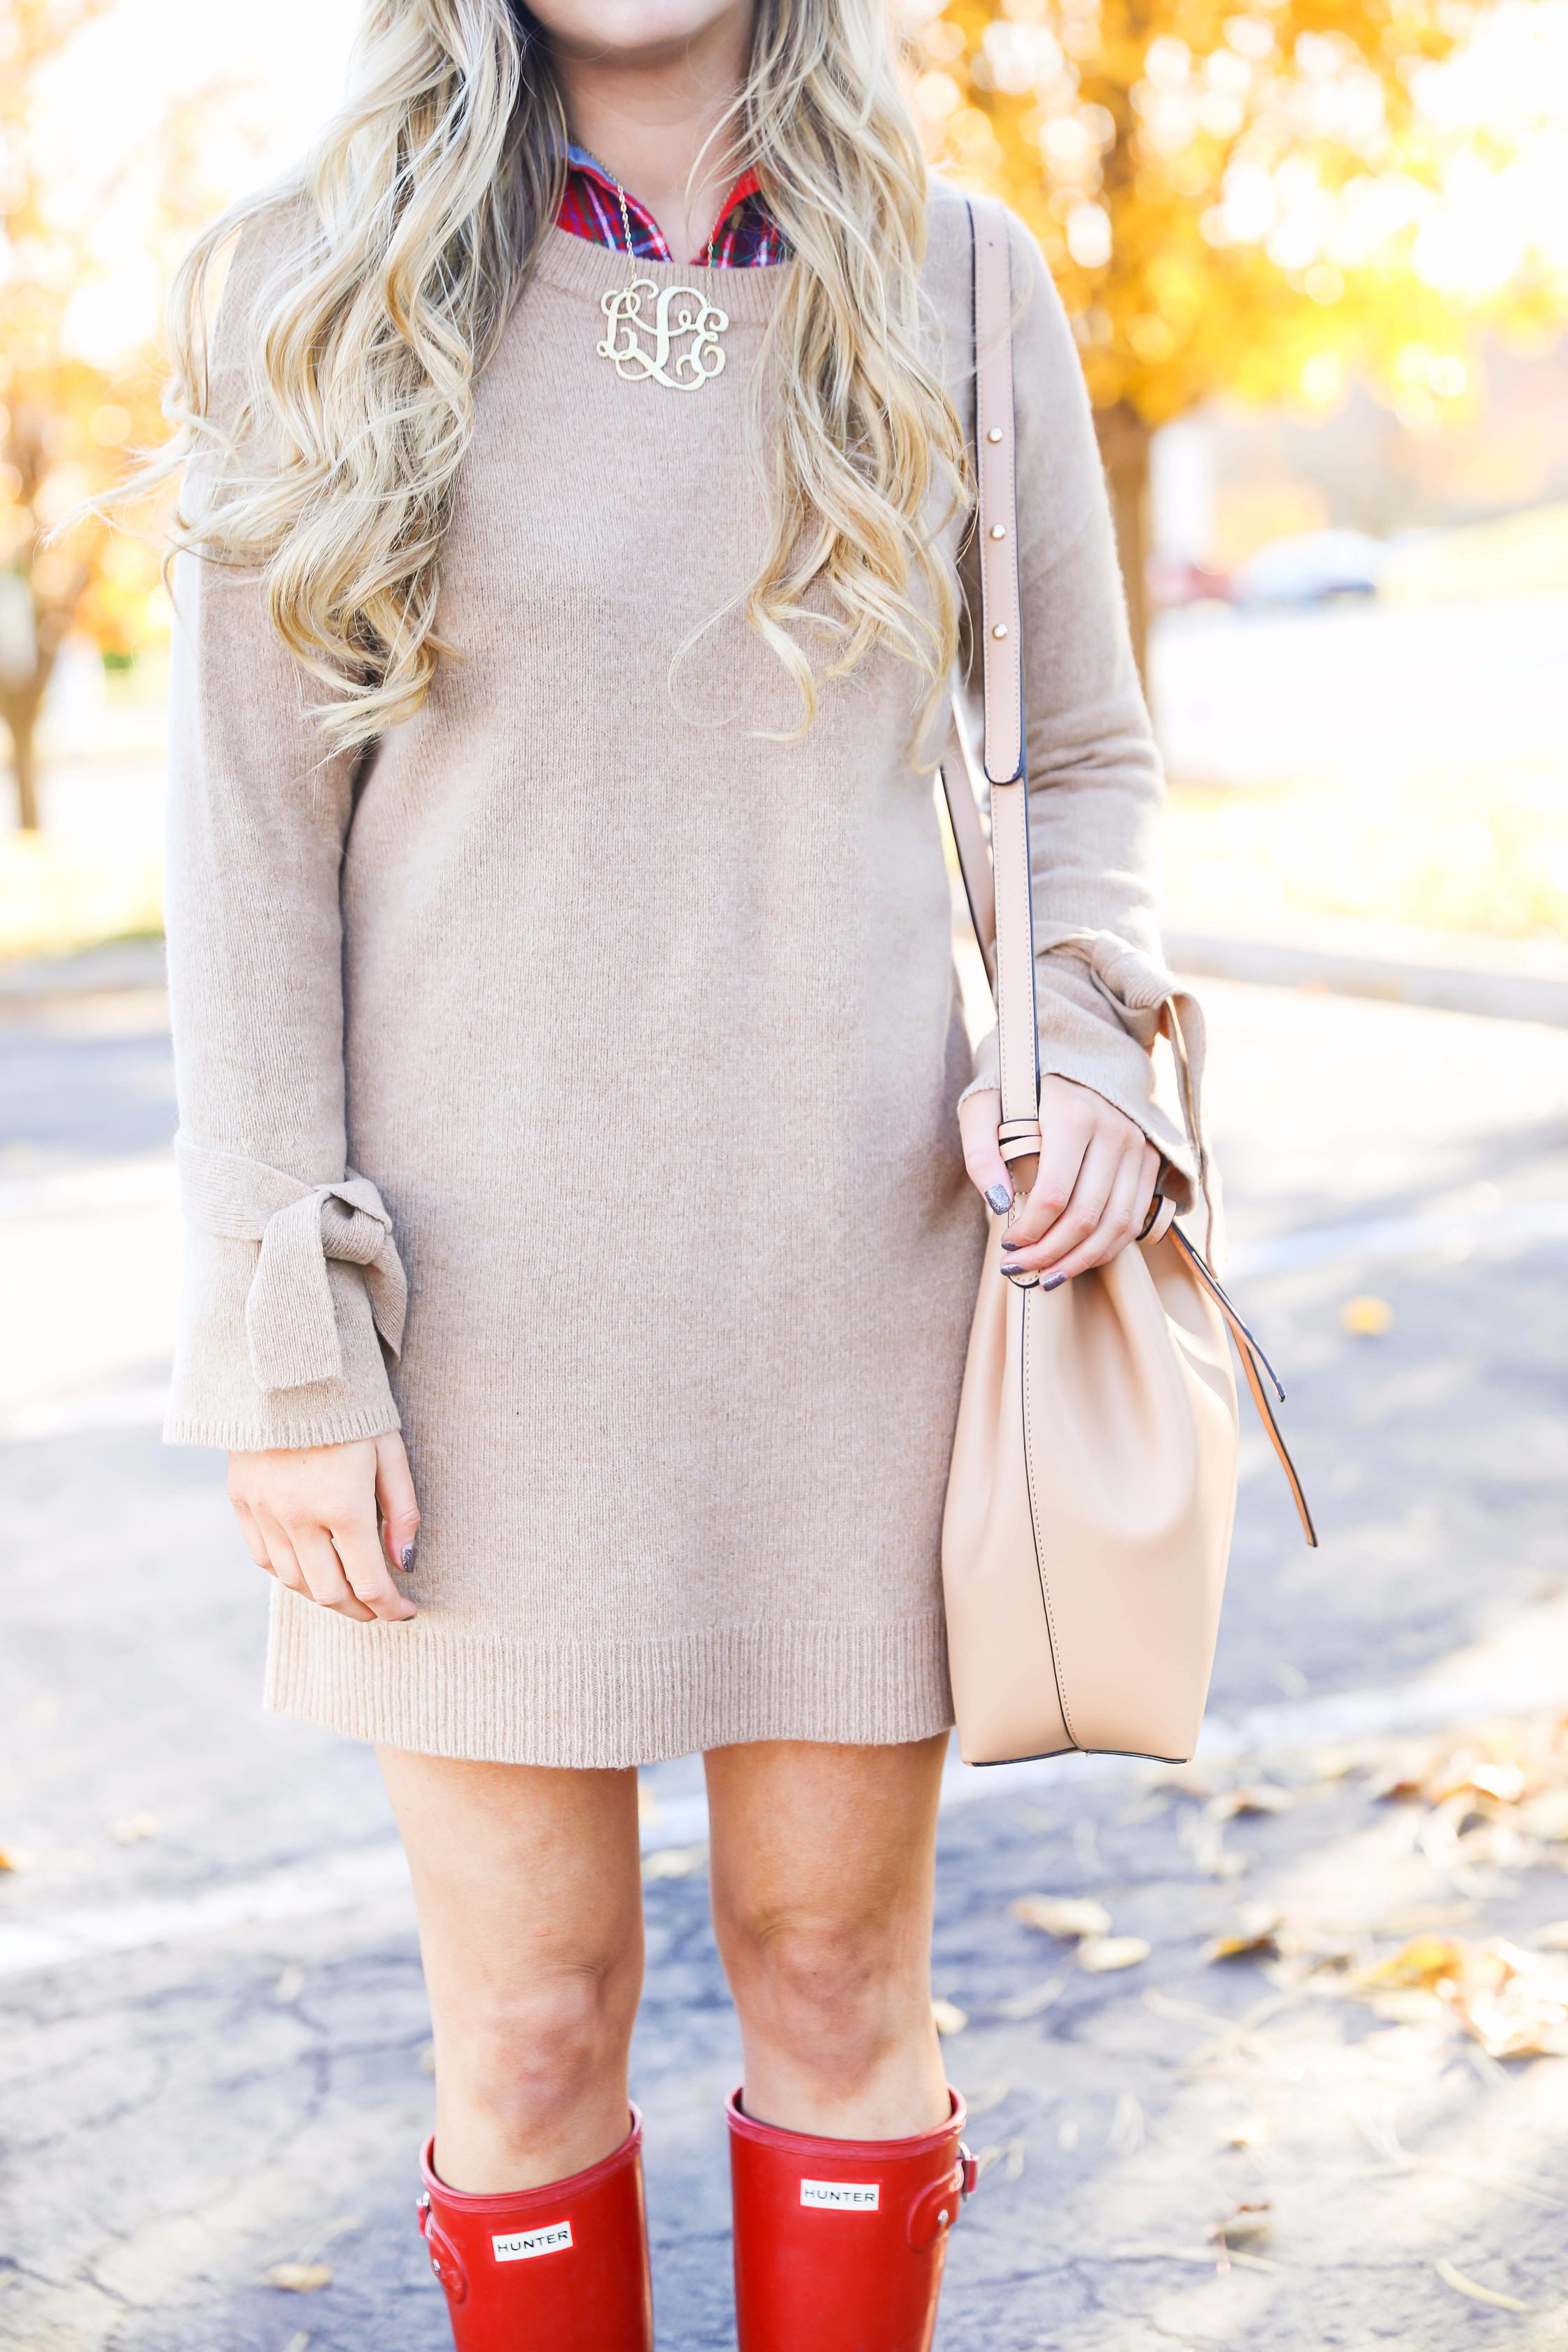 Thanksgiving outfit idea tan dress with tied sleeves! Layered with flannel underneath! I love this fall outfit with hunter boots! Details on fashion blog daily dose of charm by lauren lindmark